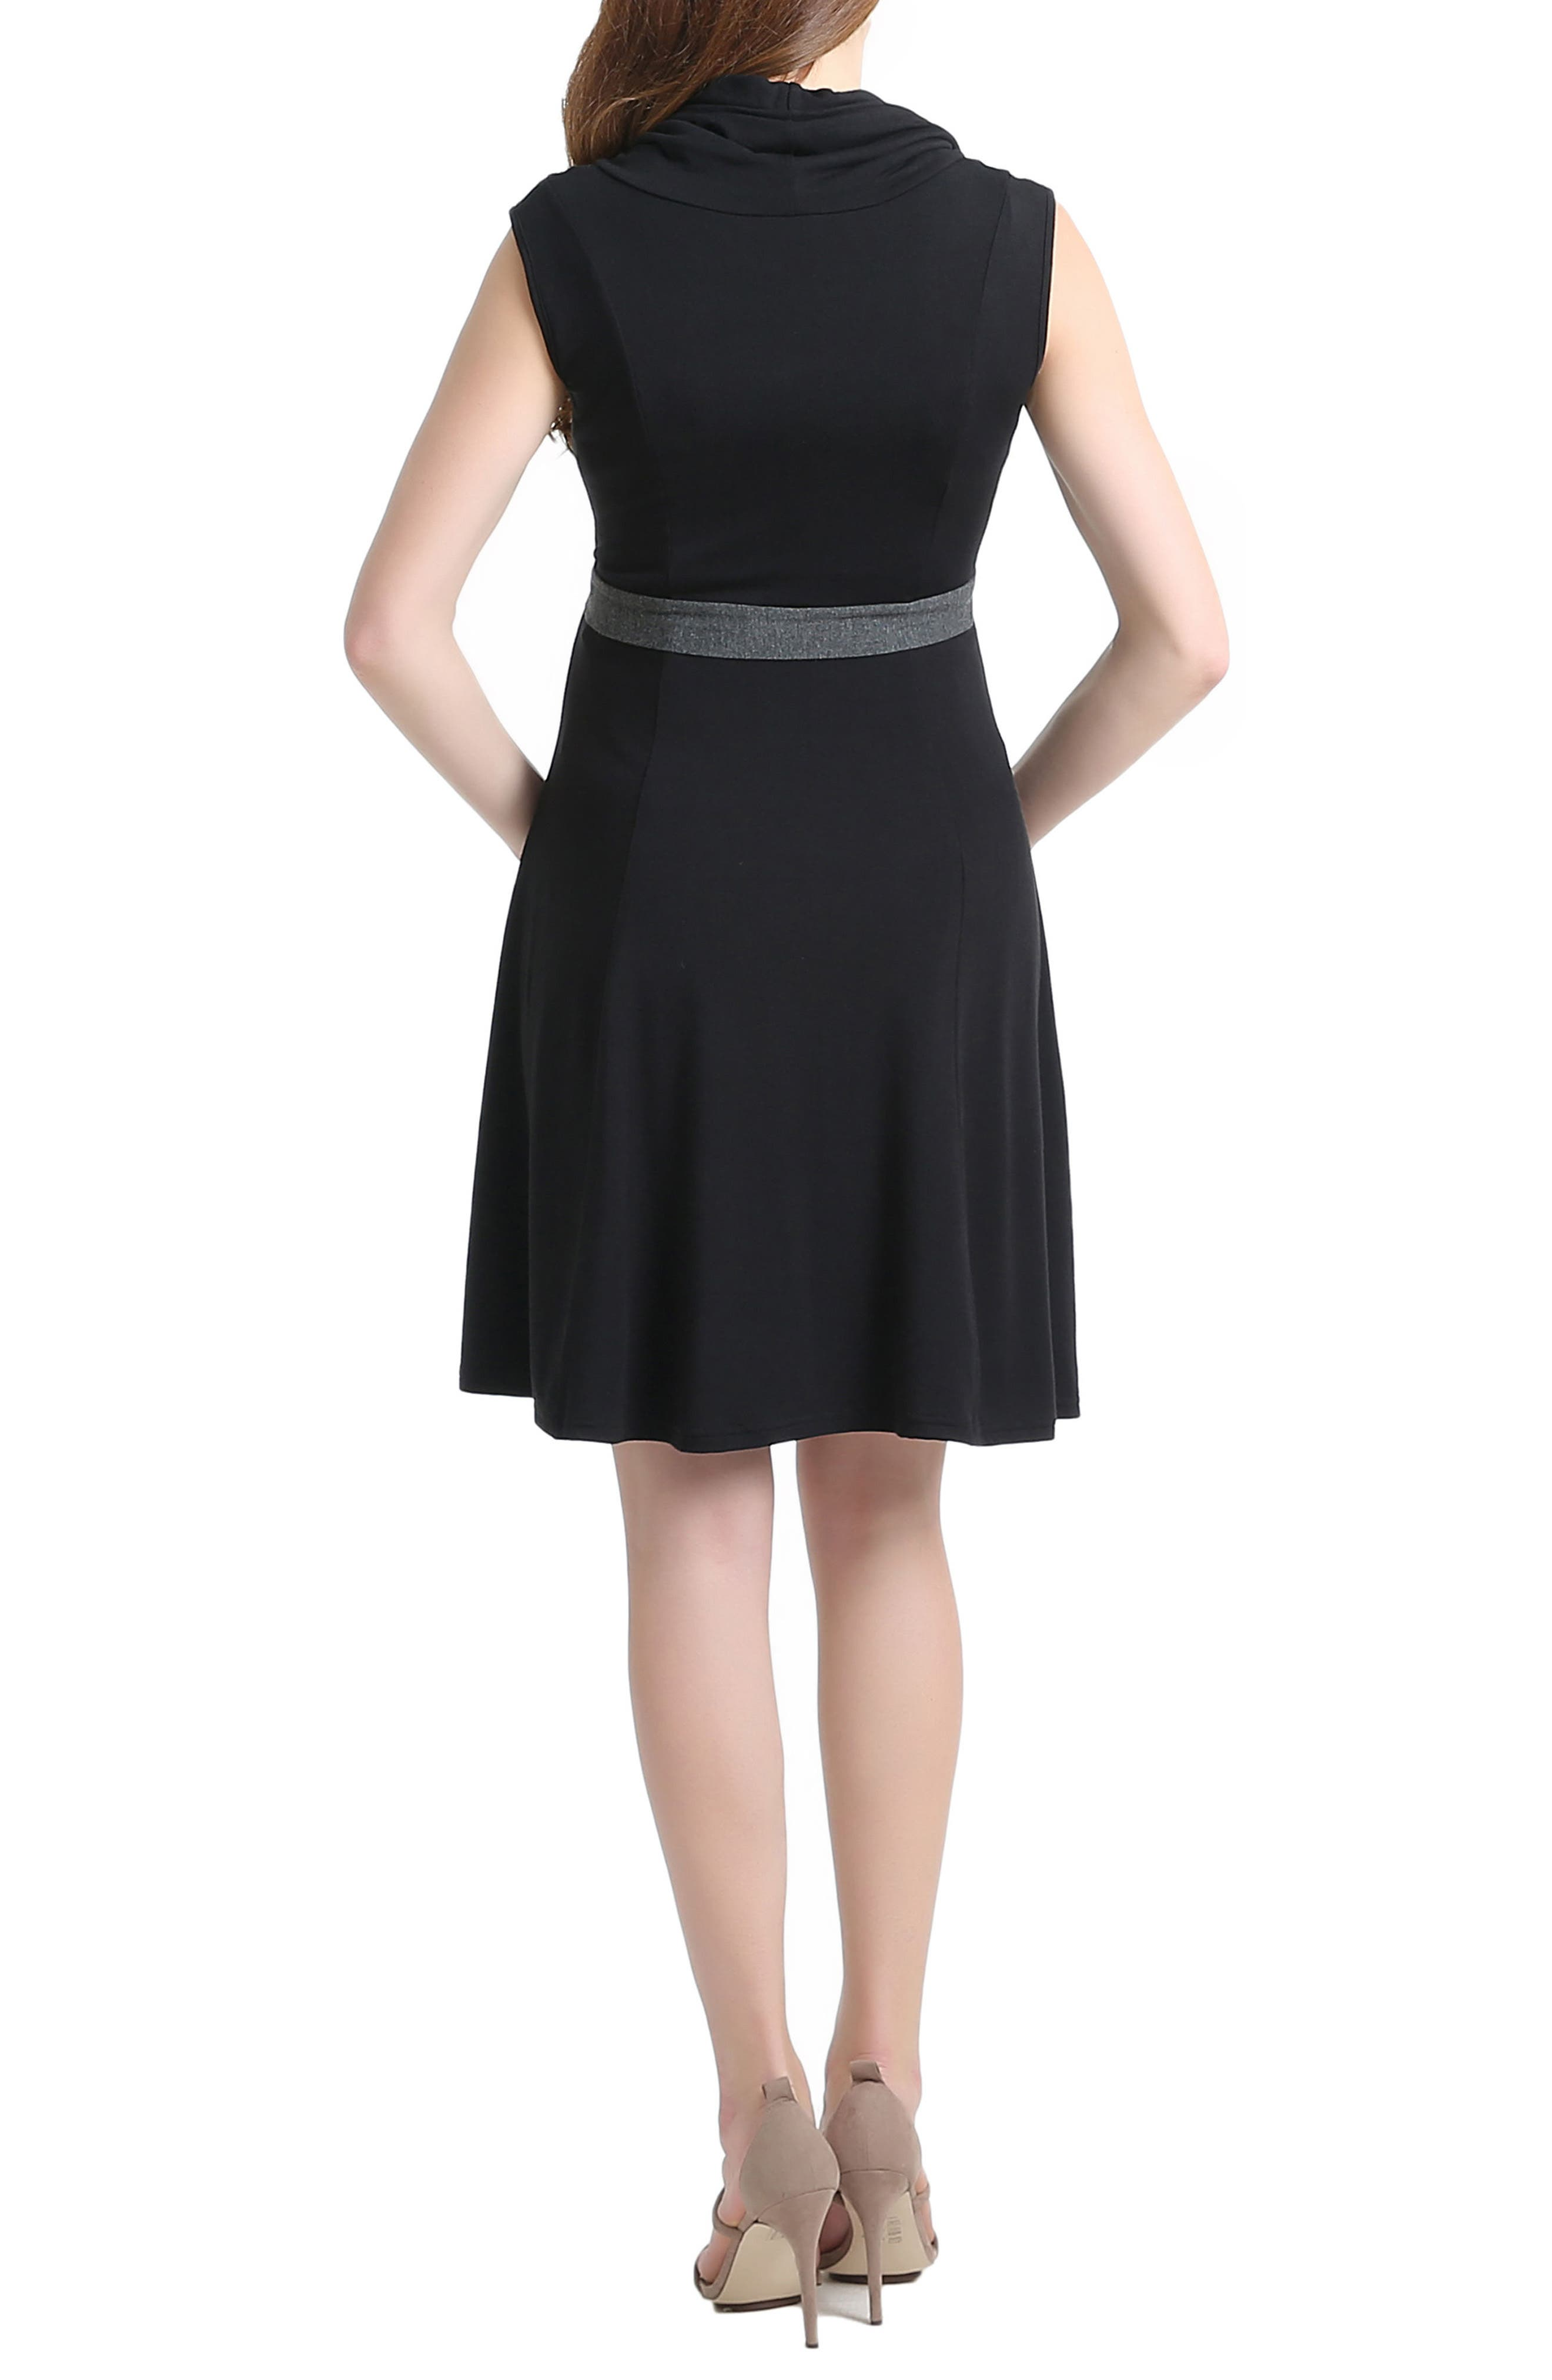 Megan Cowl Neck Maternity/Nursing Dress,                             Alternate thumbnail 2, color,                             001